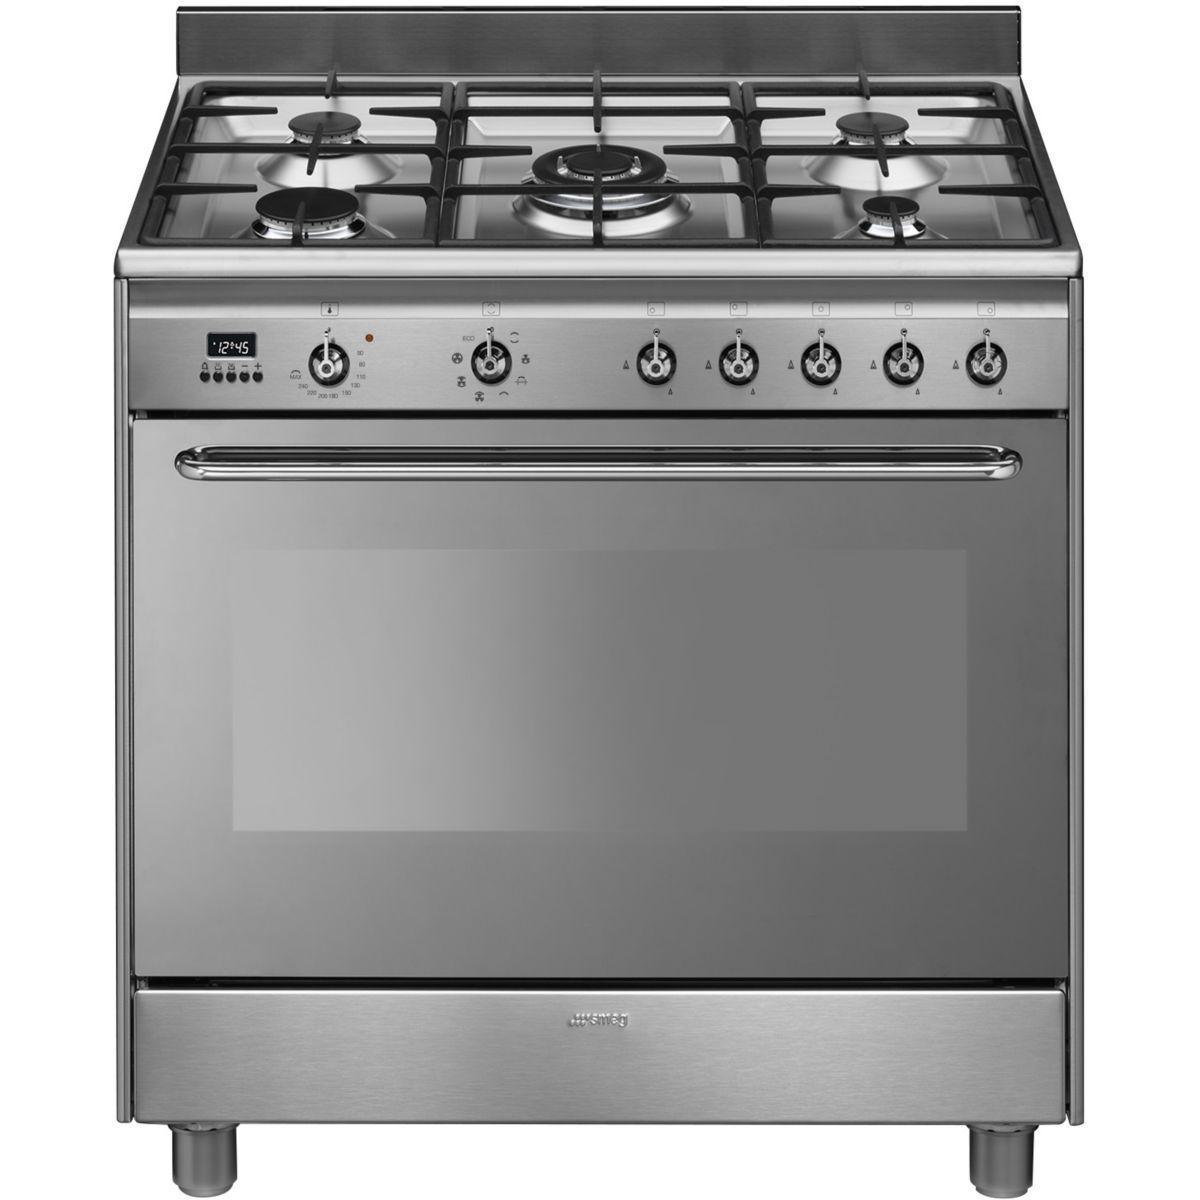 Pack promo cuisini�re gaz smeg cg90x9 + cr�dence smeg kit 90 x inox + hotte d�corative smeg kdc91xe (photo)